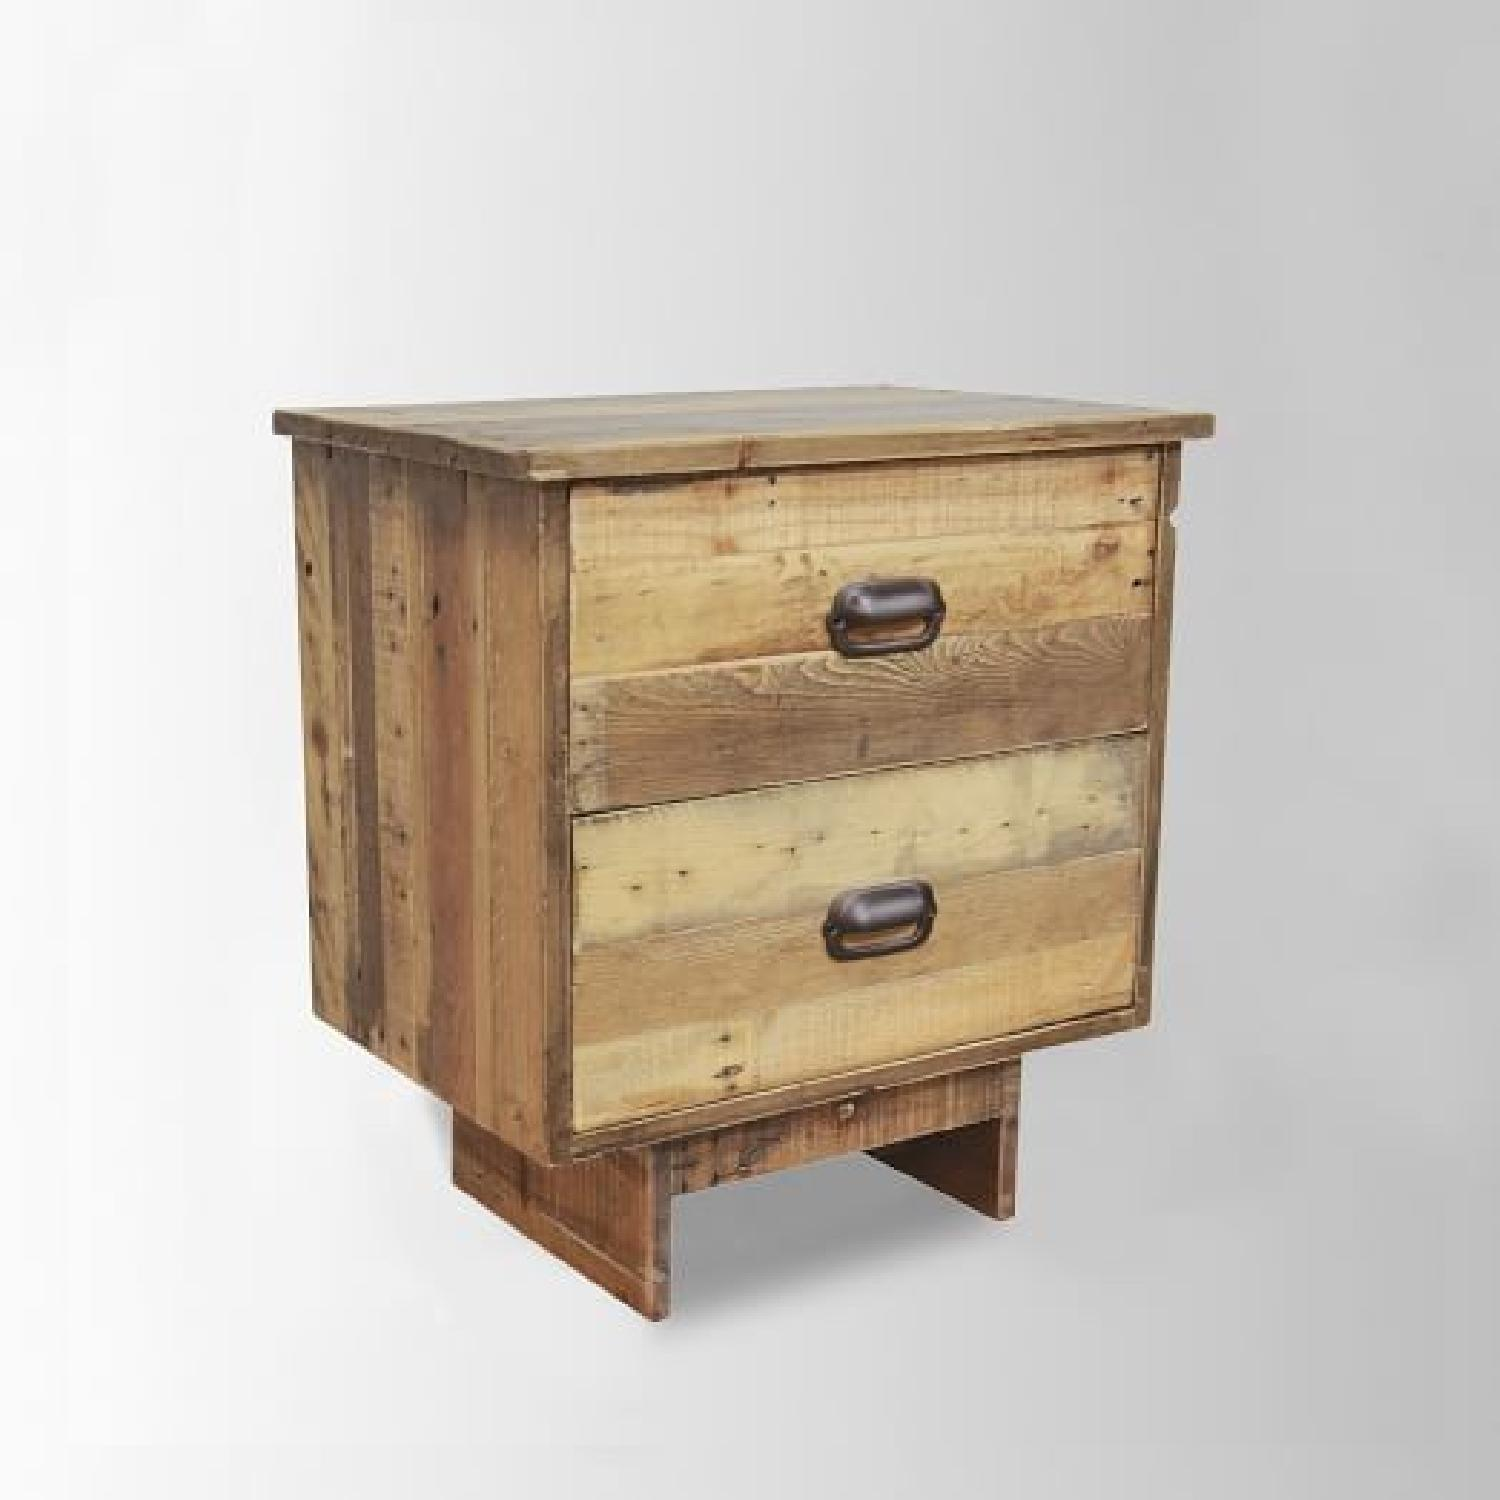 West Elm Emmerson Reclaimed Wood 2-Drawer Nightstand - image-7